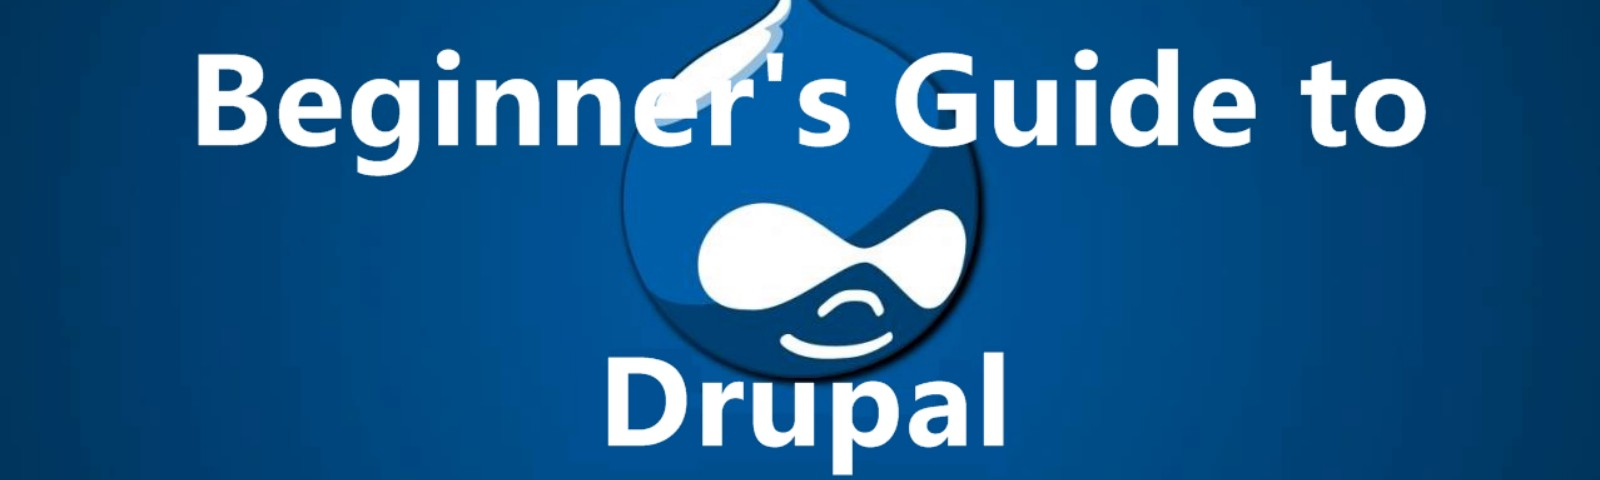 Ultimate guide to Drupal for Beginners - Valuebound - Medium